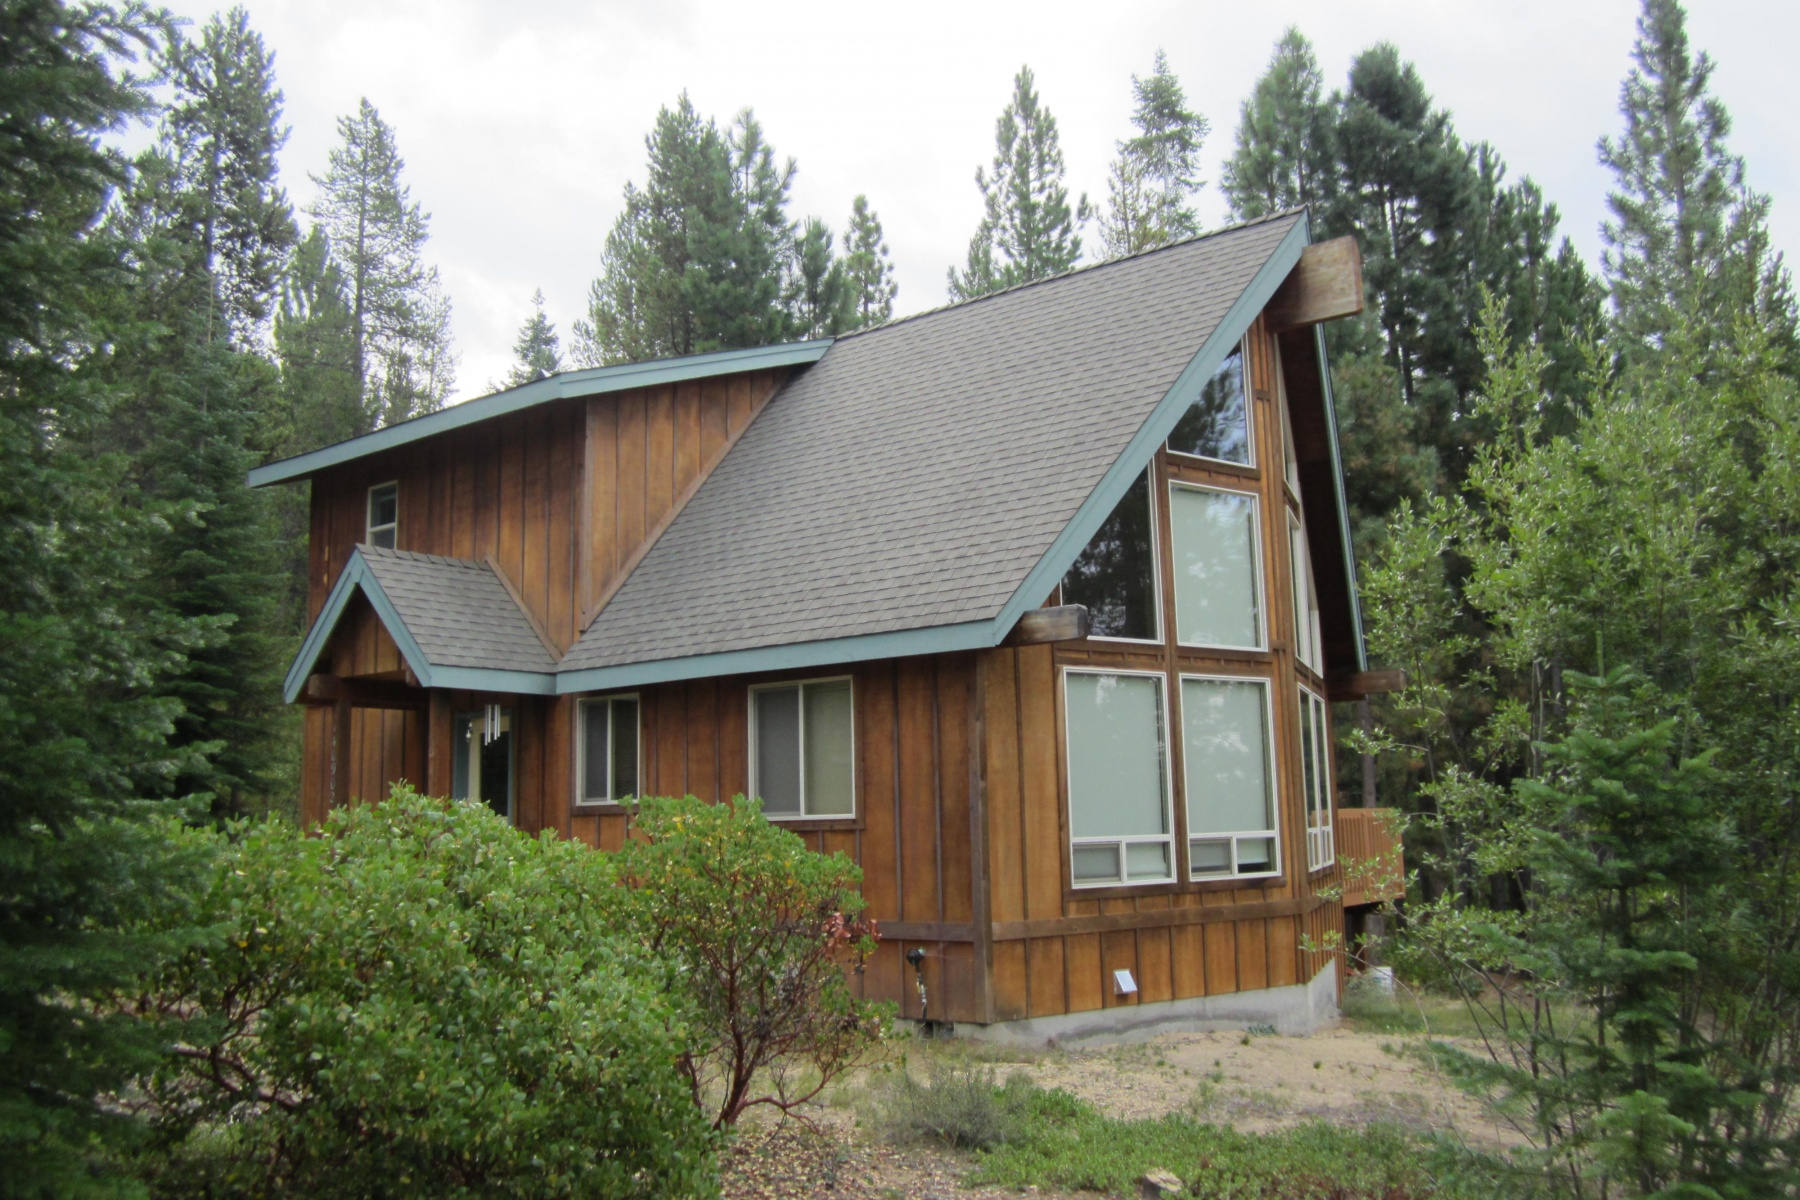 Single Family Home for Sale at 140902 Red Cone, CRESCENT LAKE 140902 Red Cone Dr Crescent Lake, Oregon, 97733 United States